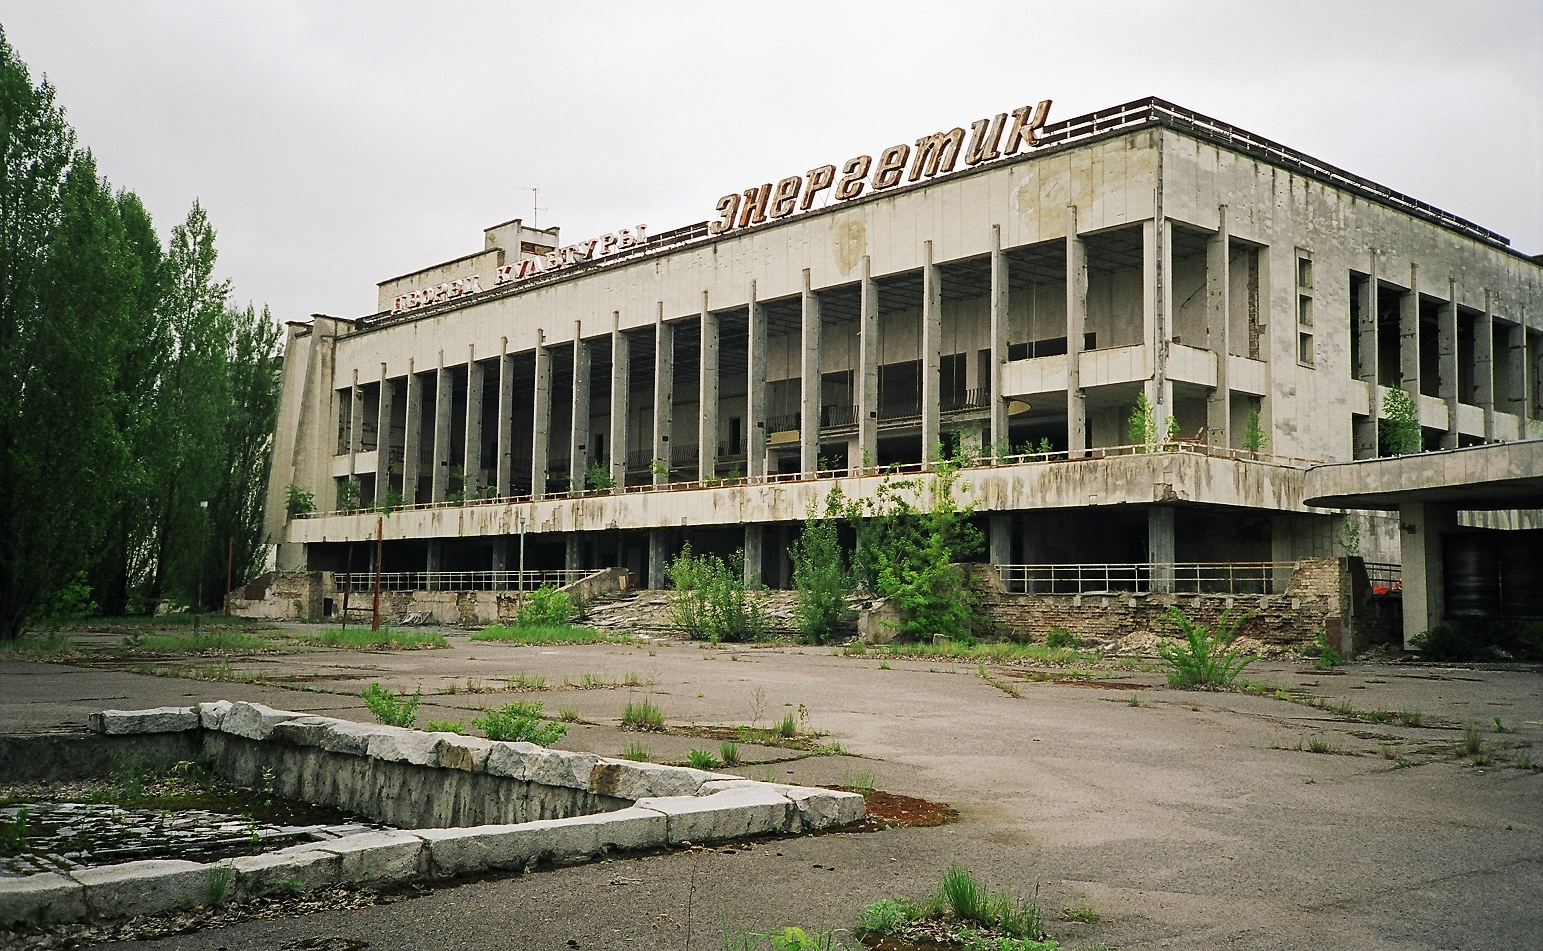 palace of culture energetik it used to have large rance ian